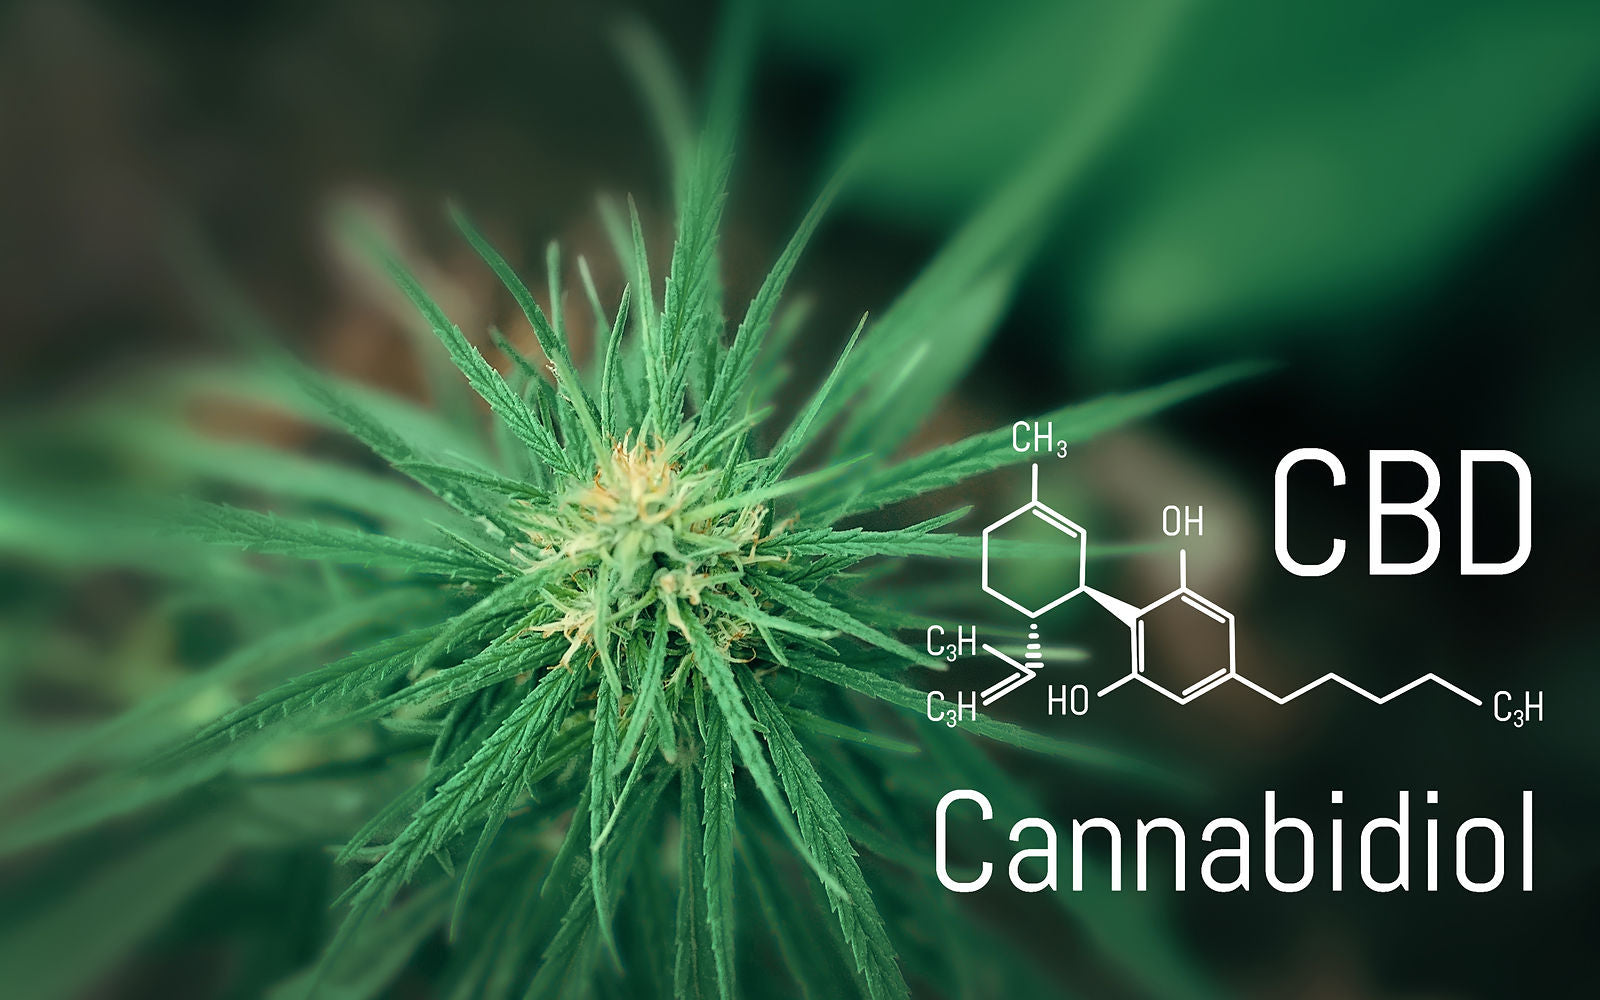 CBD plant with the words Cannabidiol on the image